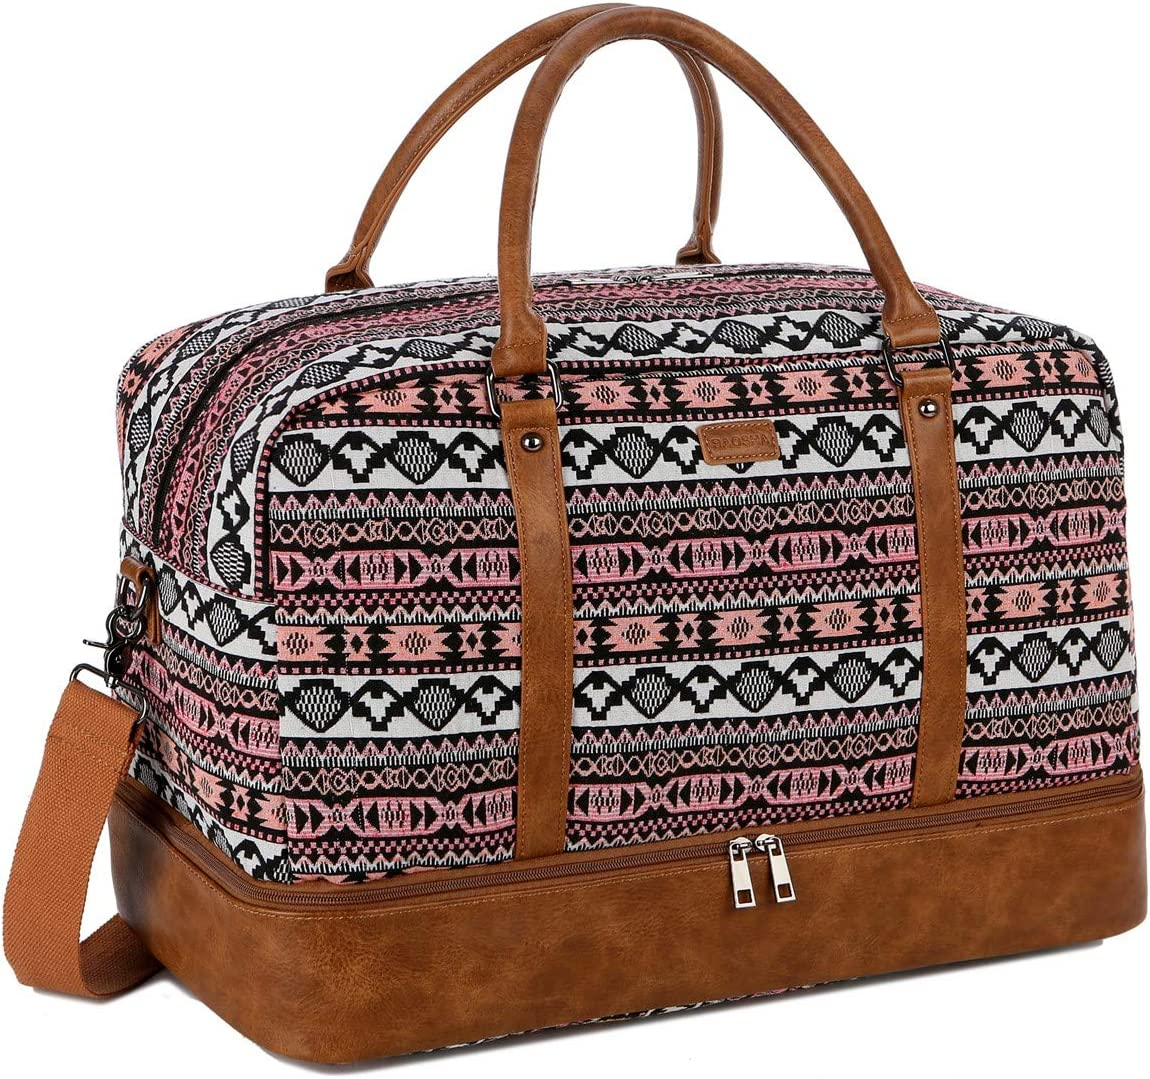 BAOSHA Women s Colorful Travel Duffel Bag Overnight Weekender Bag Carry On Tote Bag With Shoes Compartment HB-38 YS